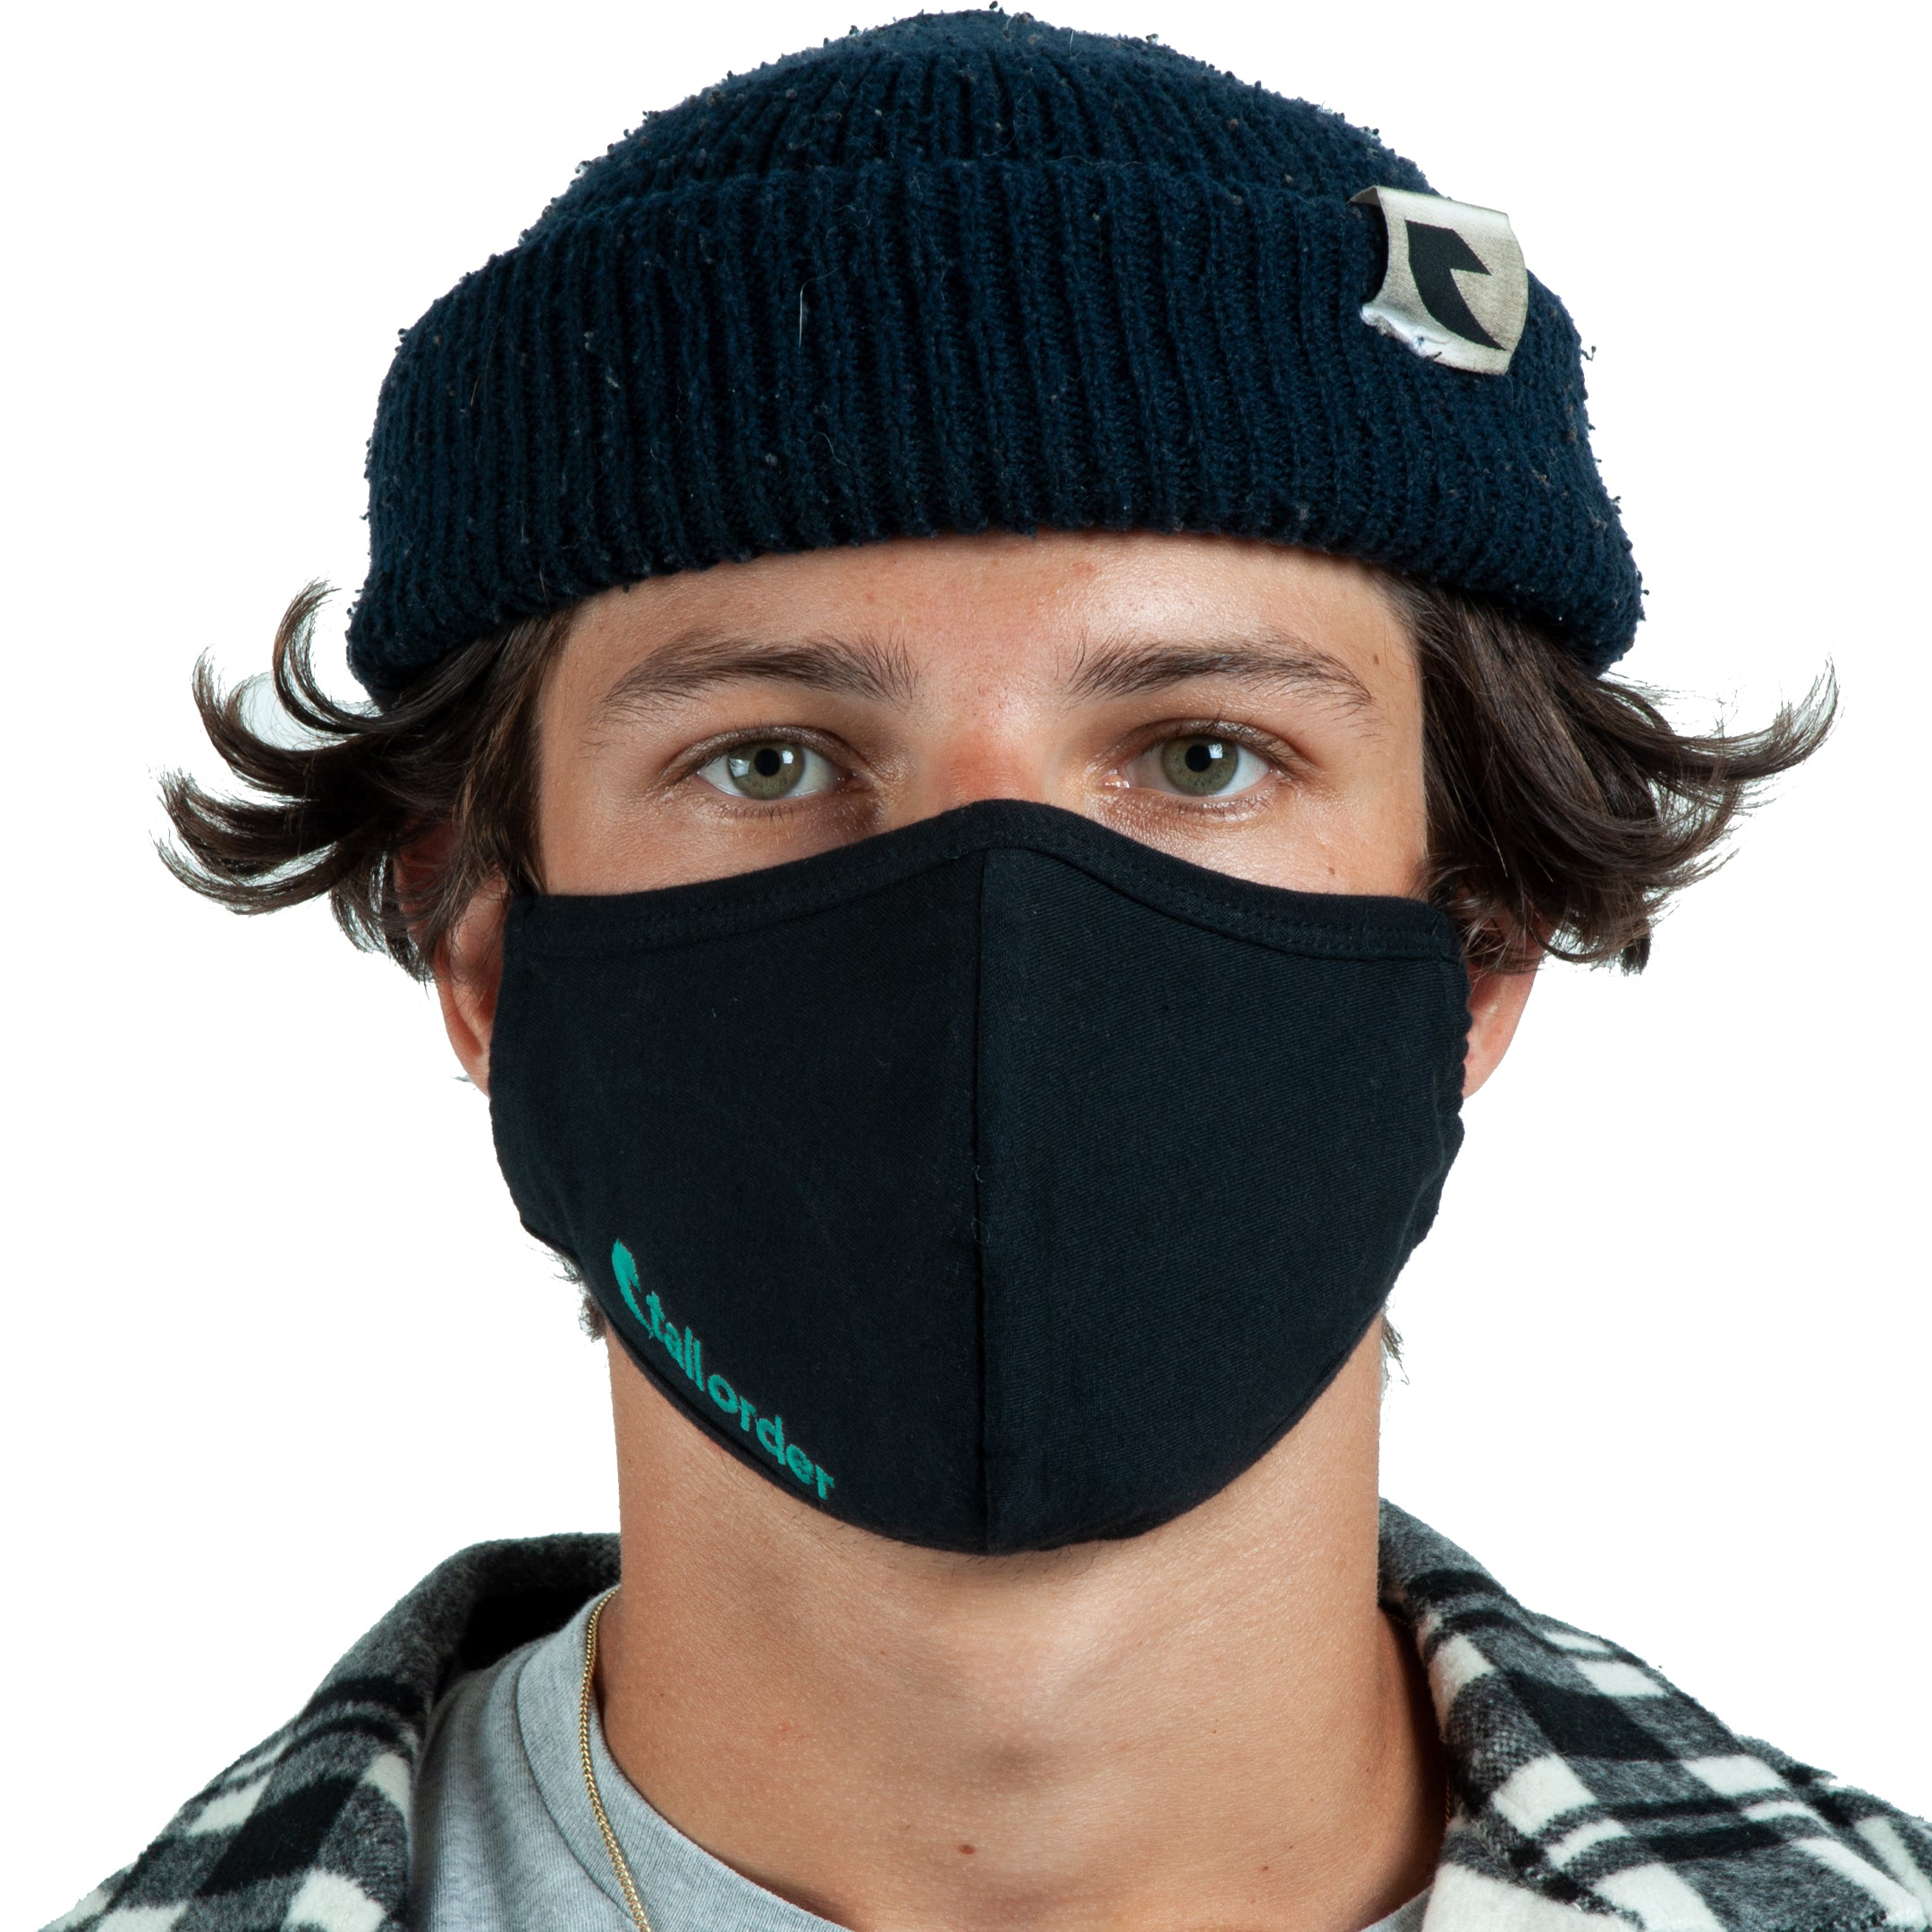 Tall Order Embroidered Mask - Black With Teal Embroidery | BMX